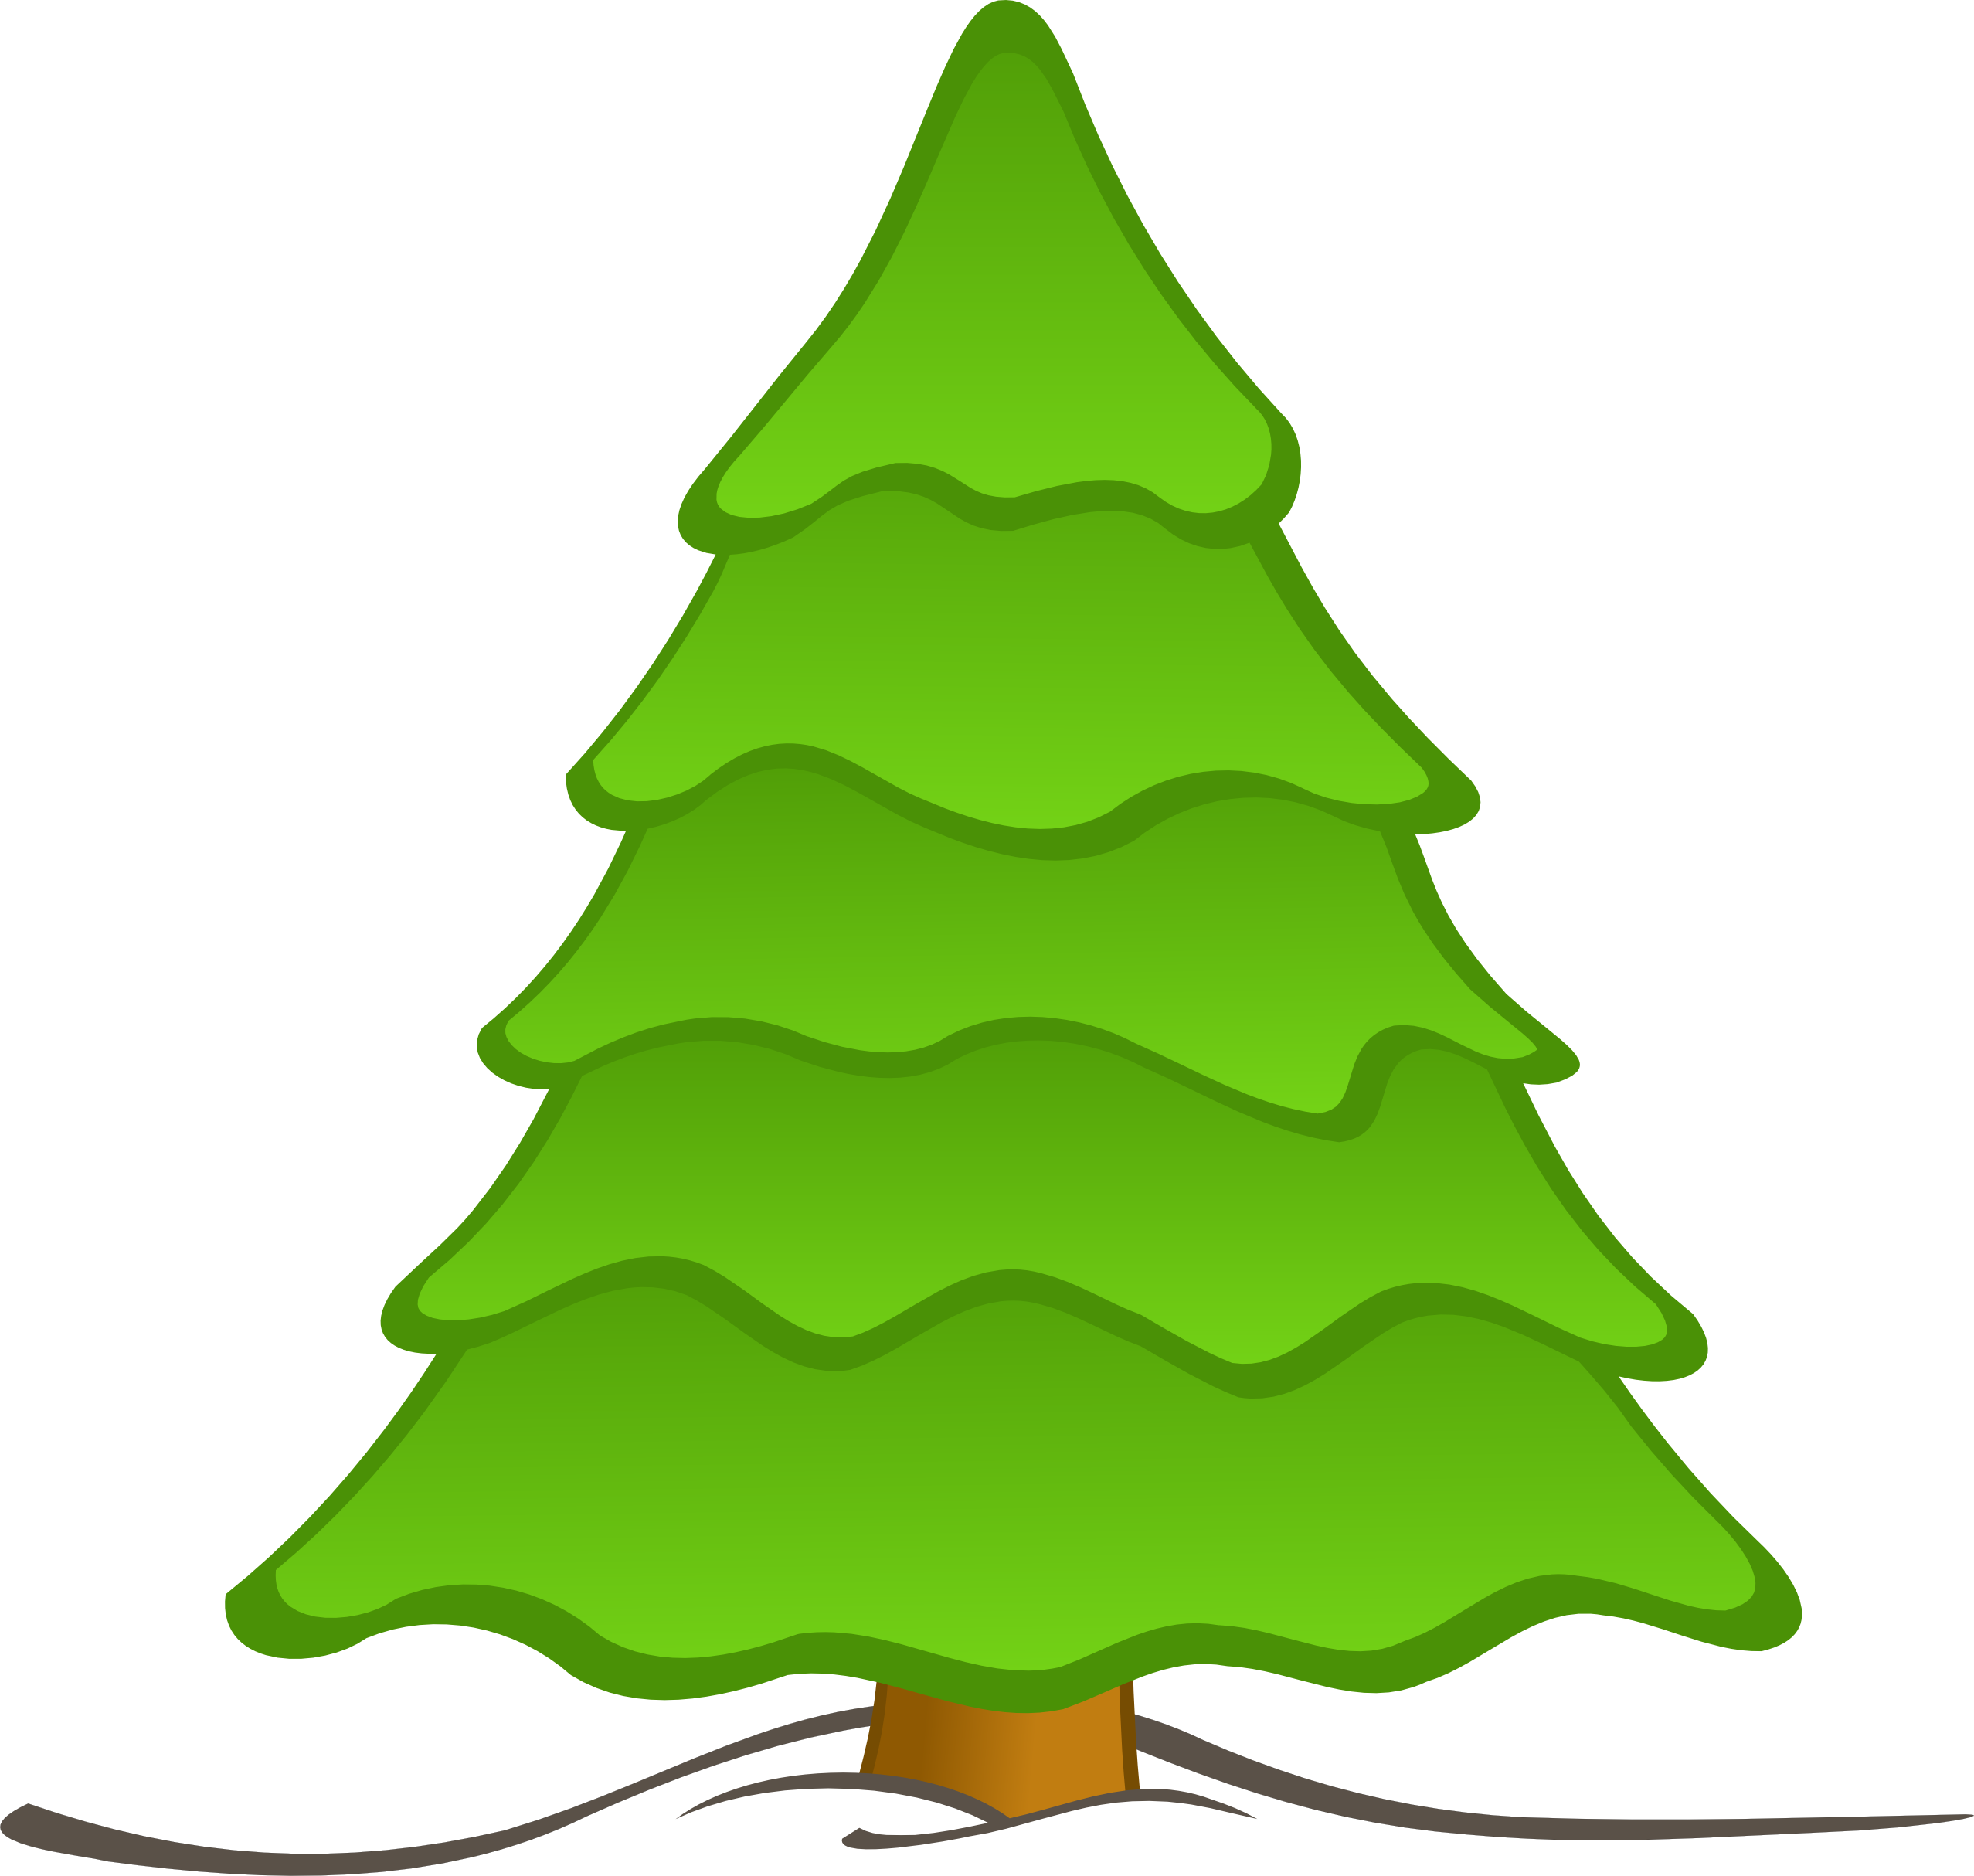 2555x2428 Collection Of Blank Christmas Tree Clipart High Quality